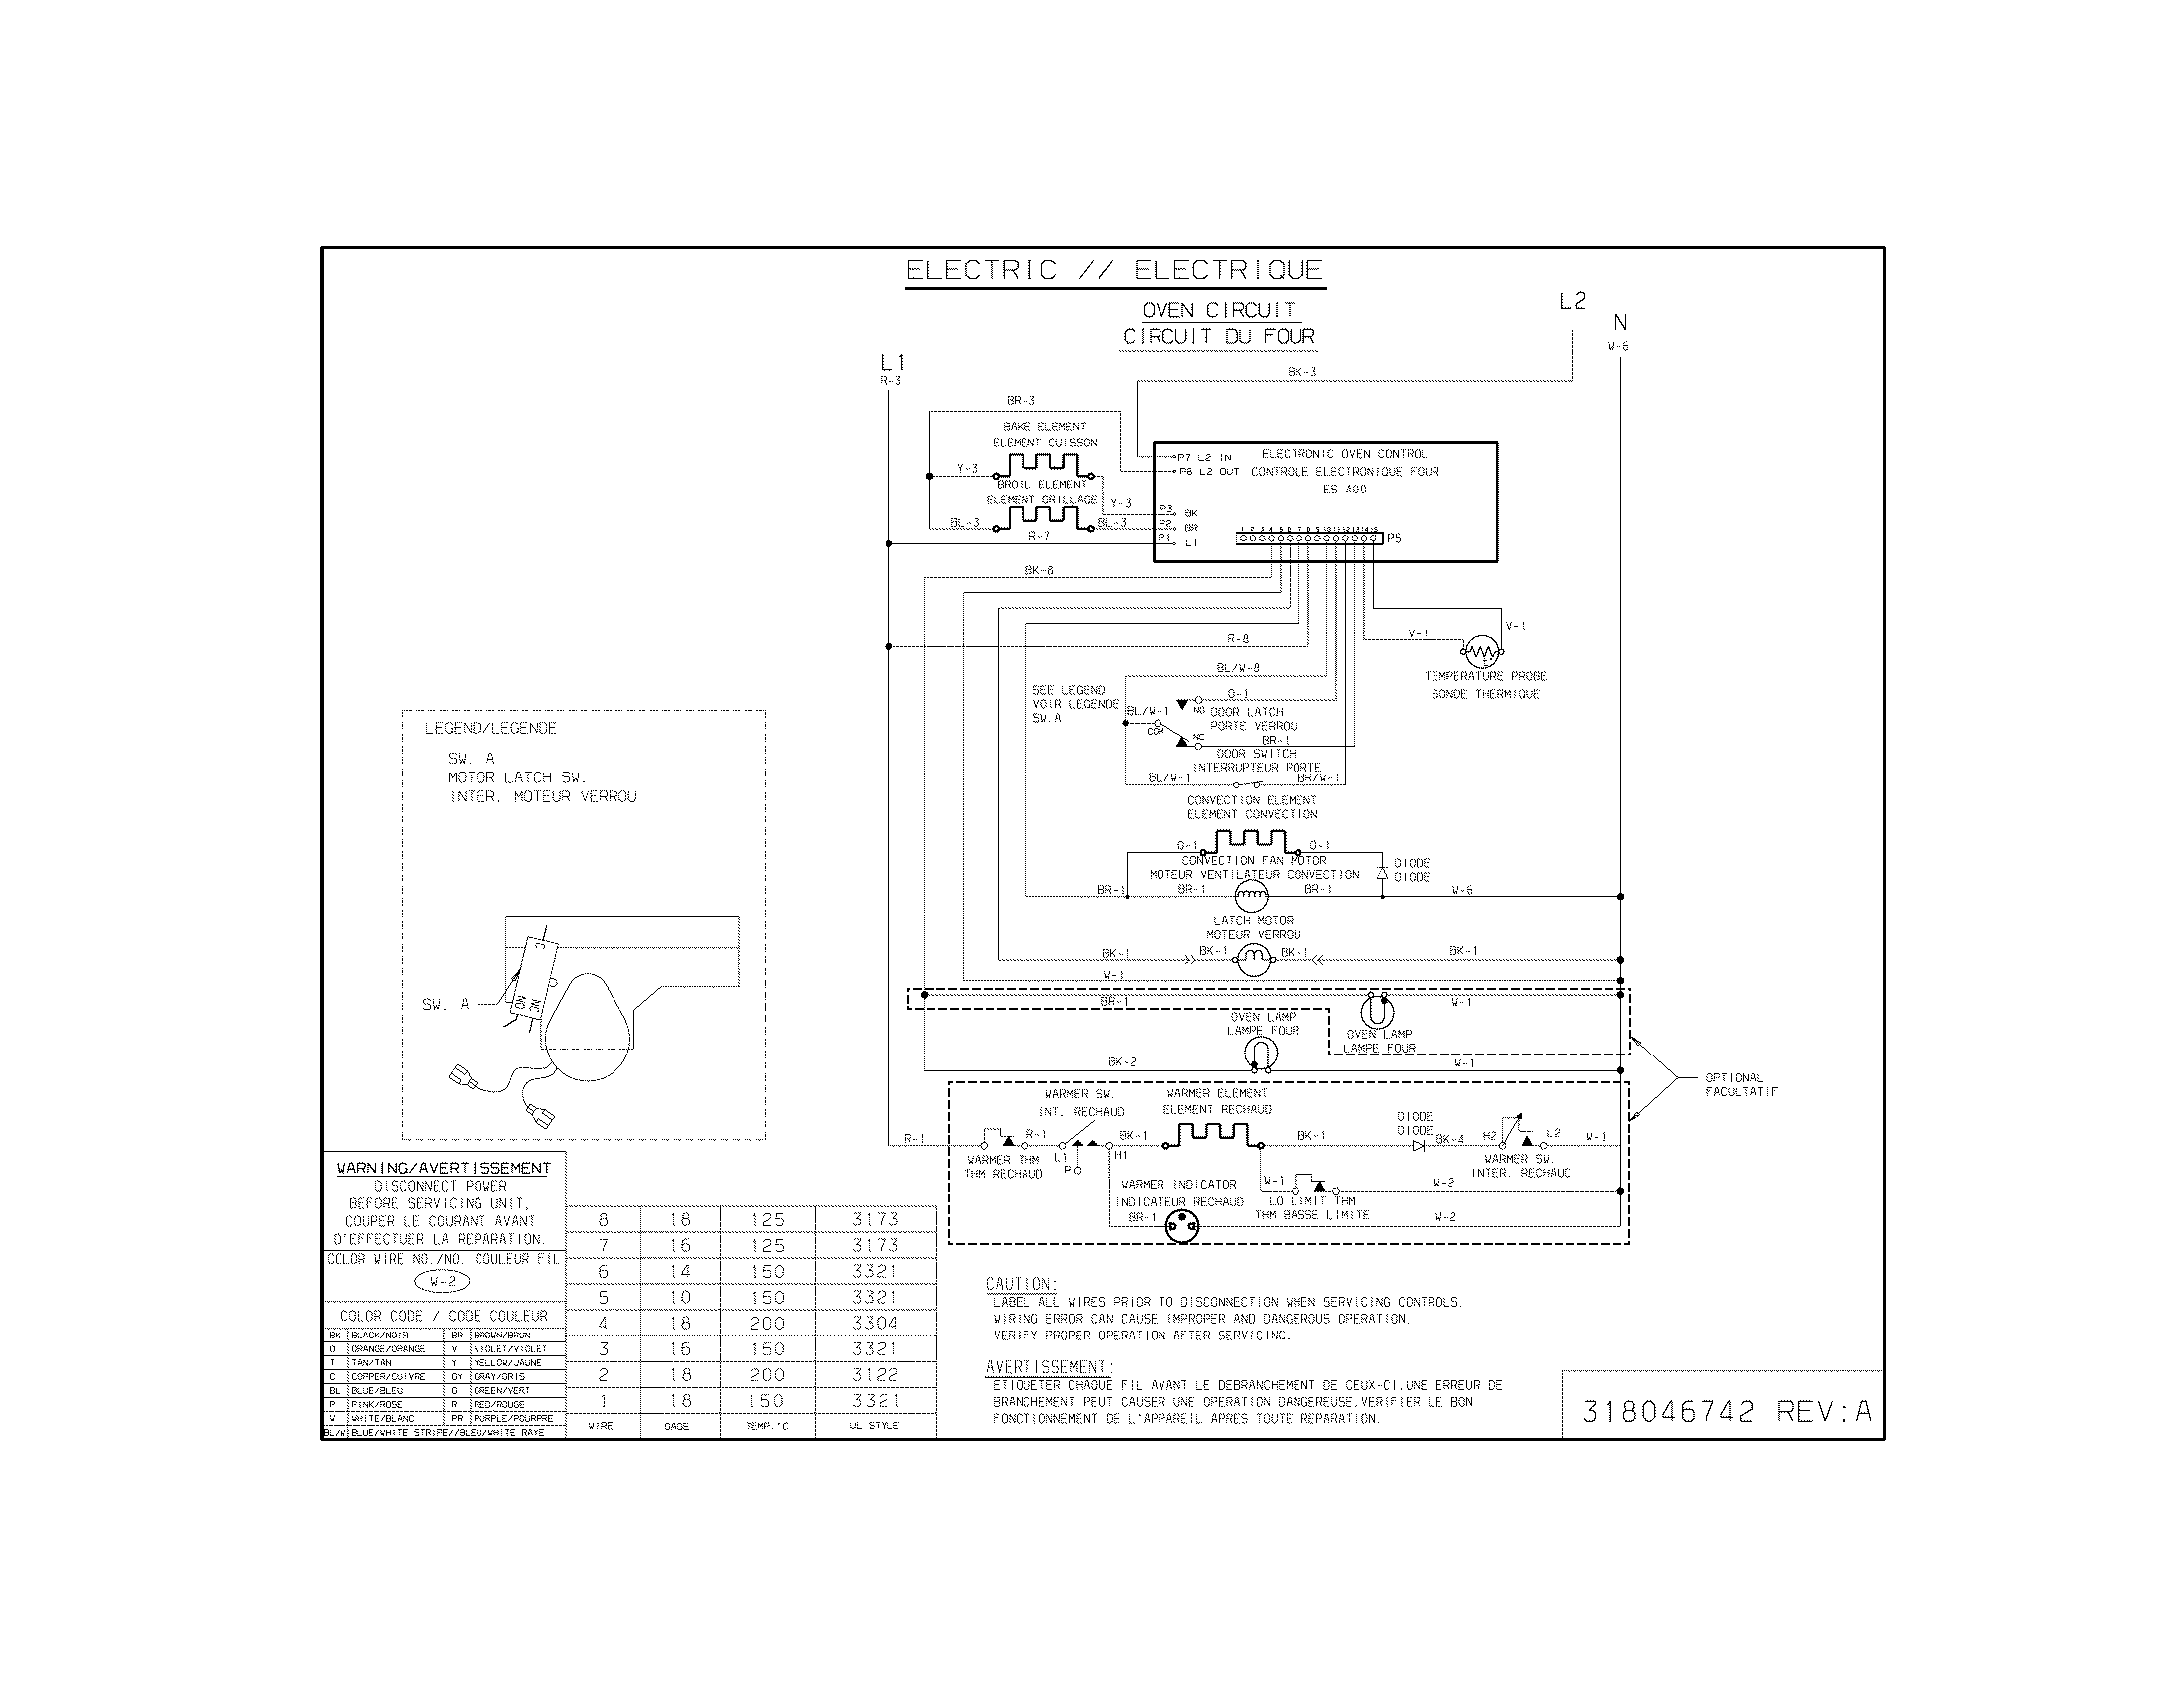 wiring diagram parts door strike wiring diagram how to wire electric door strike m490dep wiring diagram at bayanpartner.co